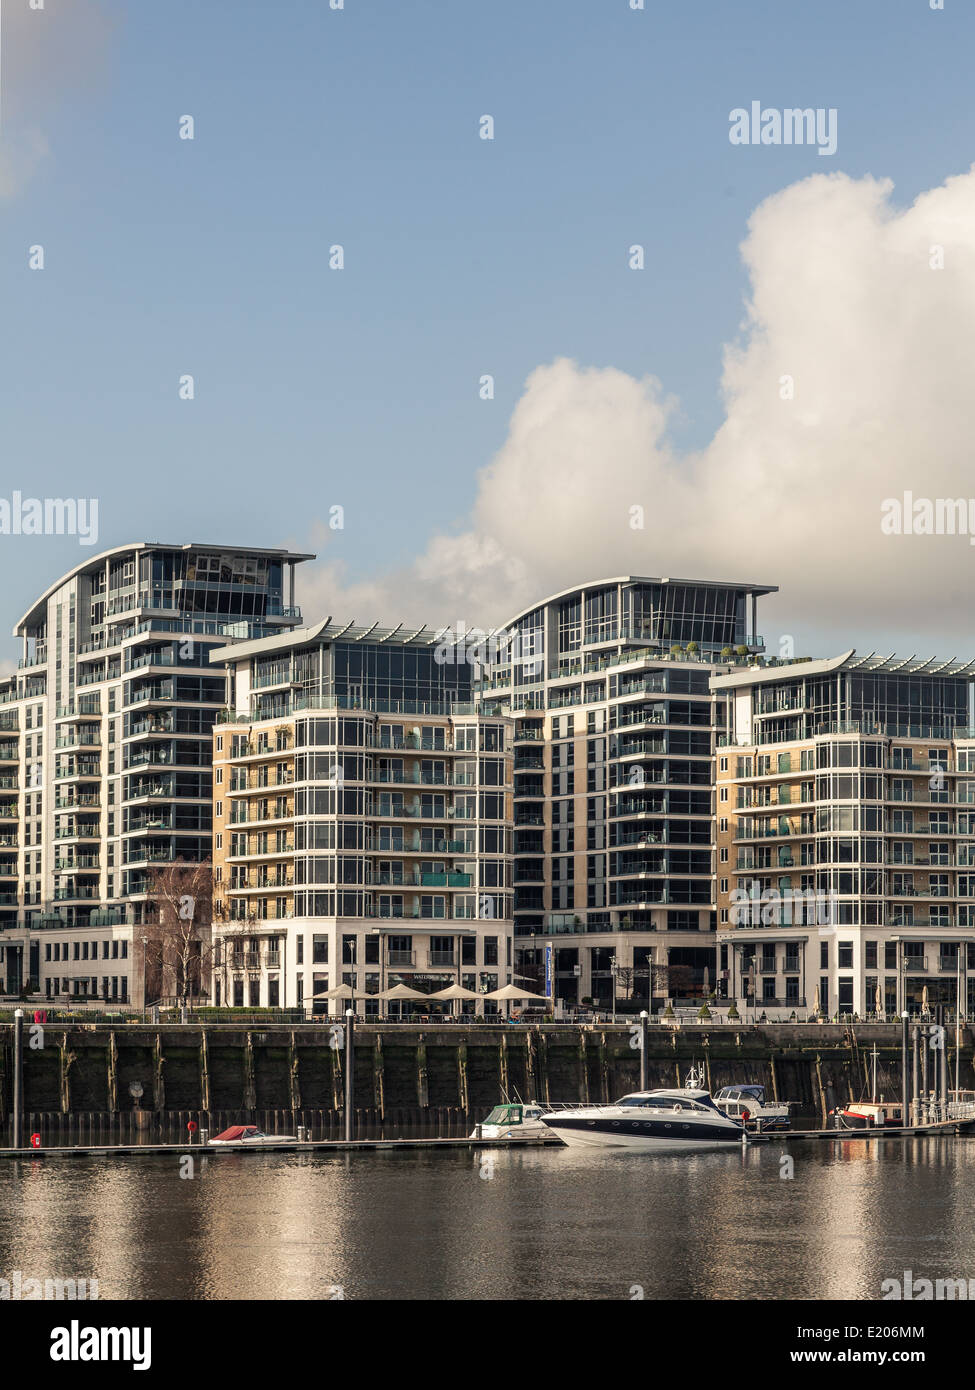 Luxury waterside apartments in Chelsea, London on the banks of the ...